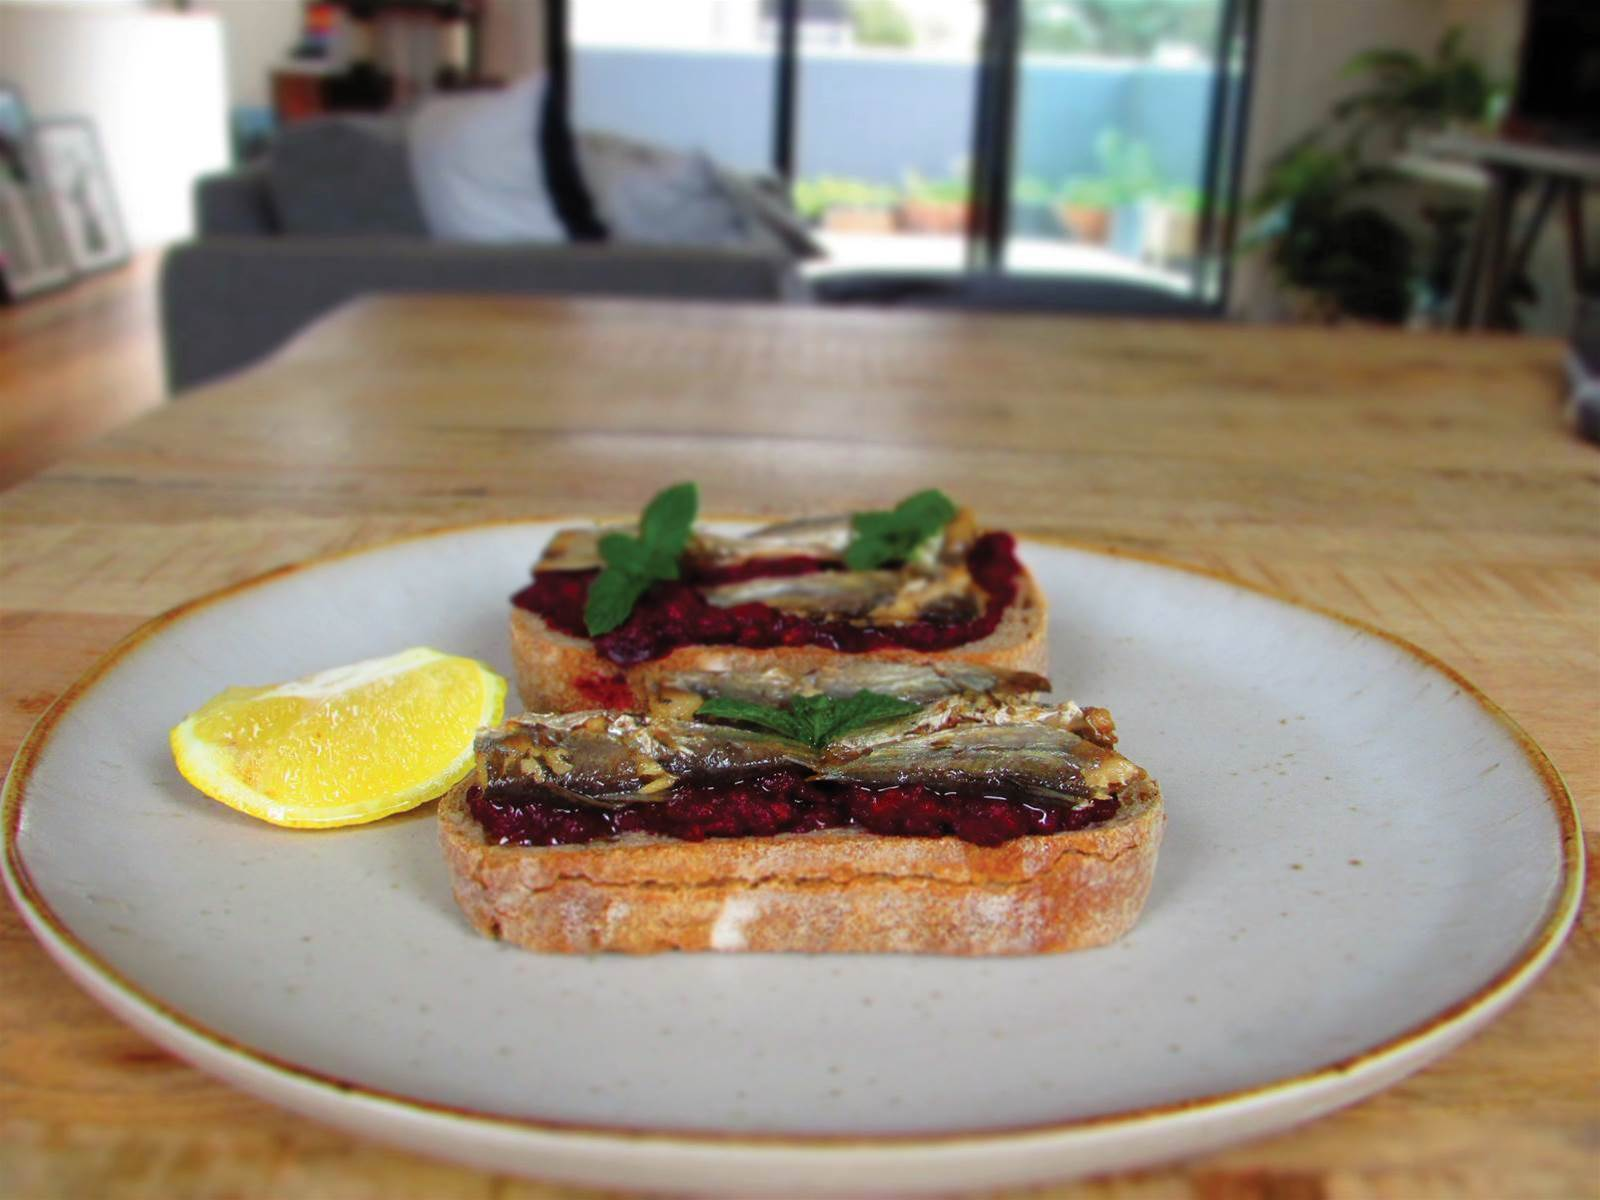 RECIPE: Roasted Beetroot and Sardines on Sourdough